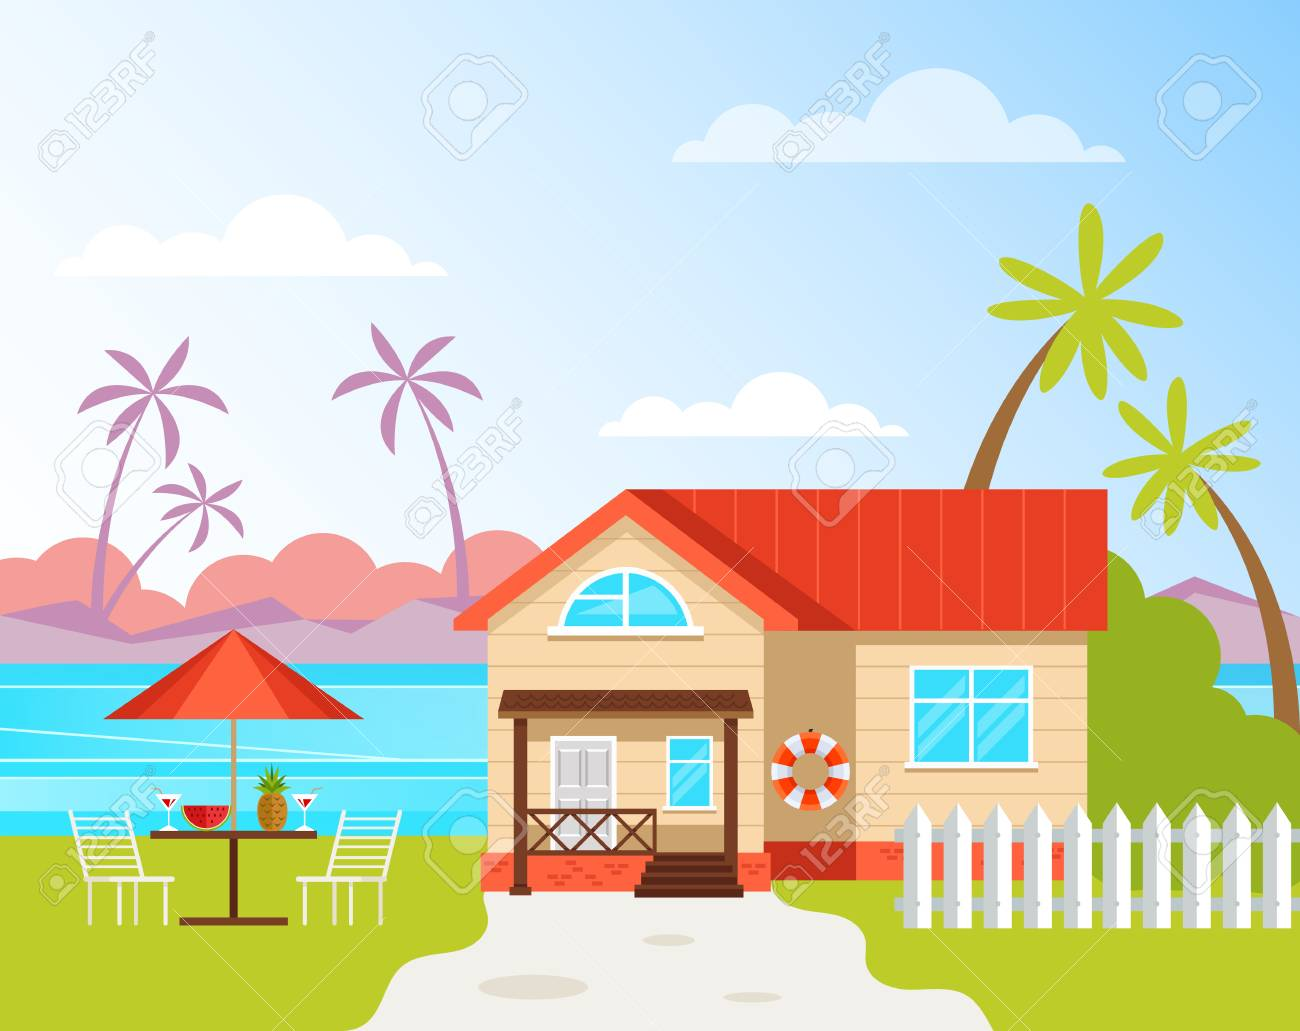 Resort House Building Rent Holiday Vacation Travel Concept Vector Royalty Free Cliparts Vectors And Stock Illustration Image 120897747